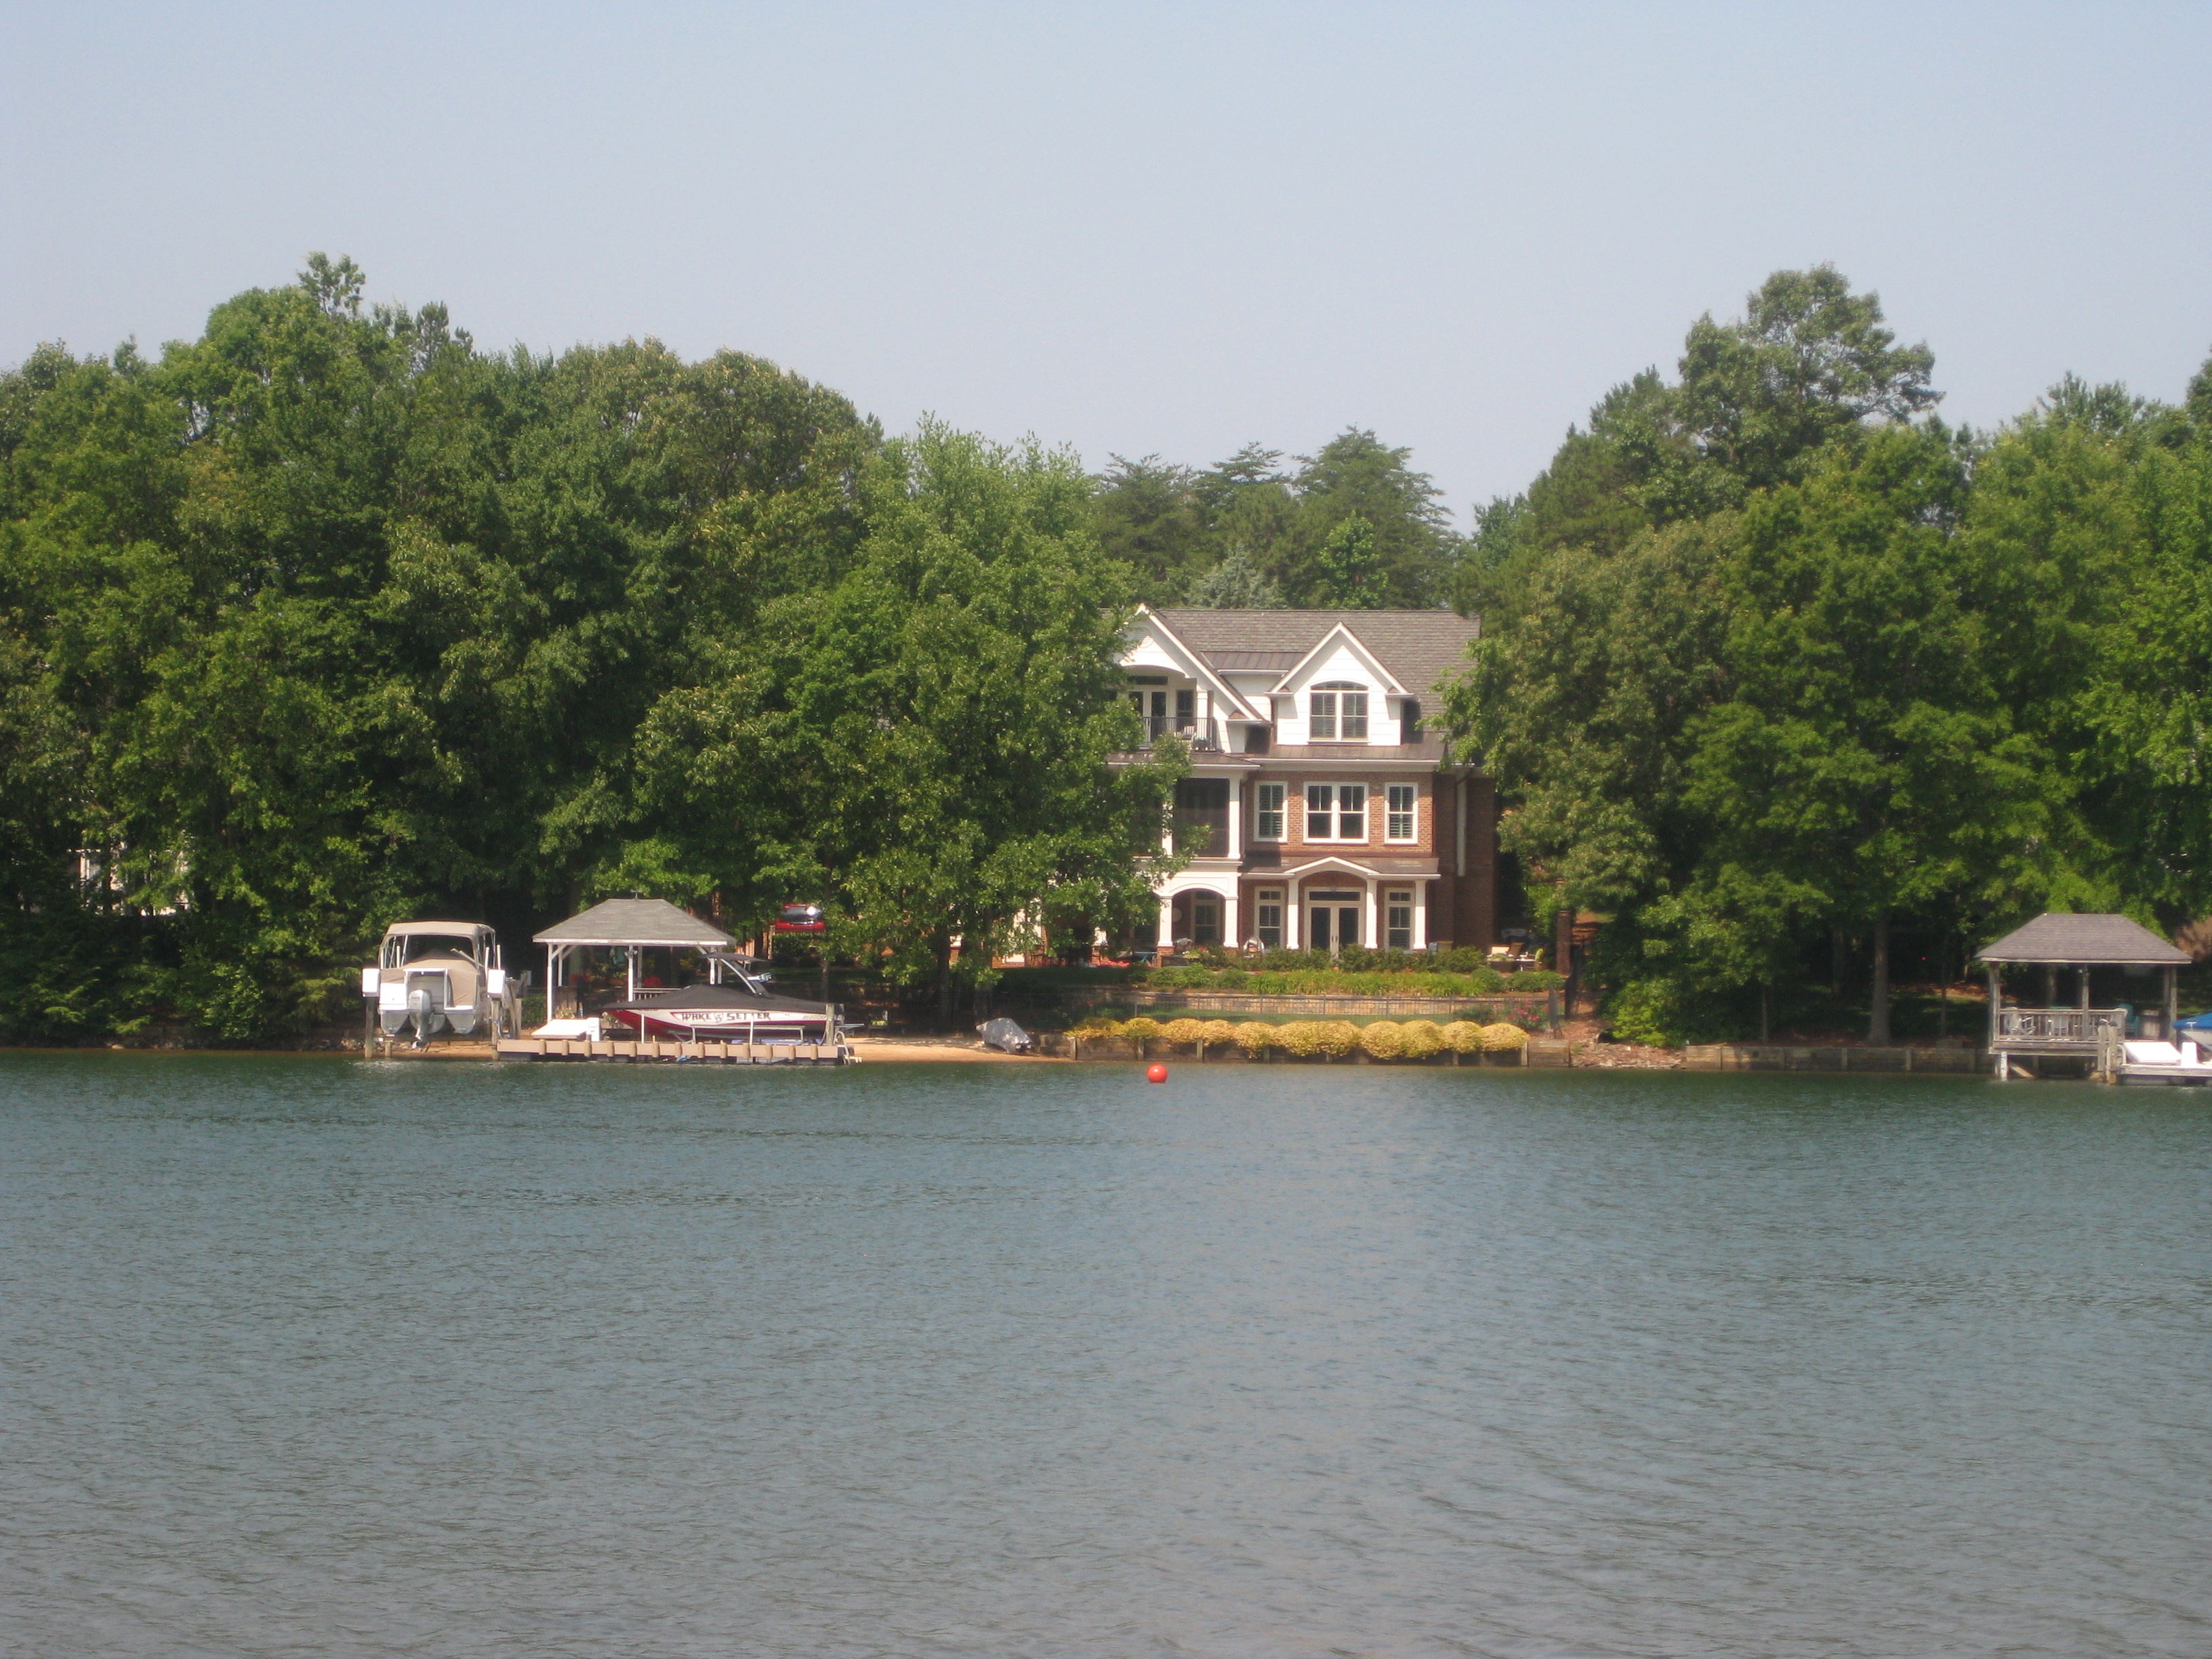 Lake Norman in North Carolina